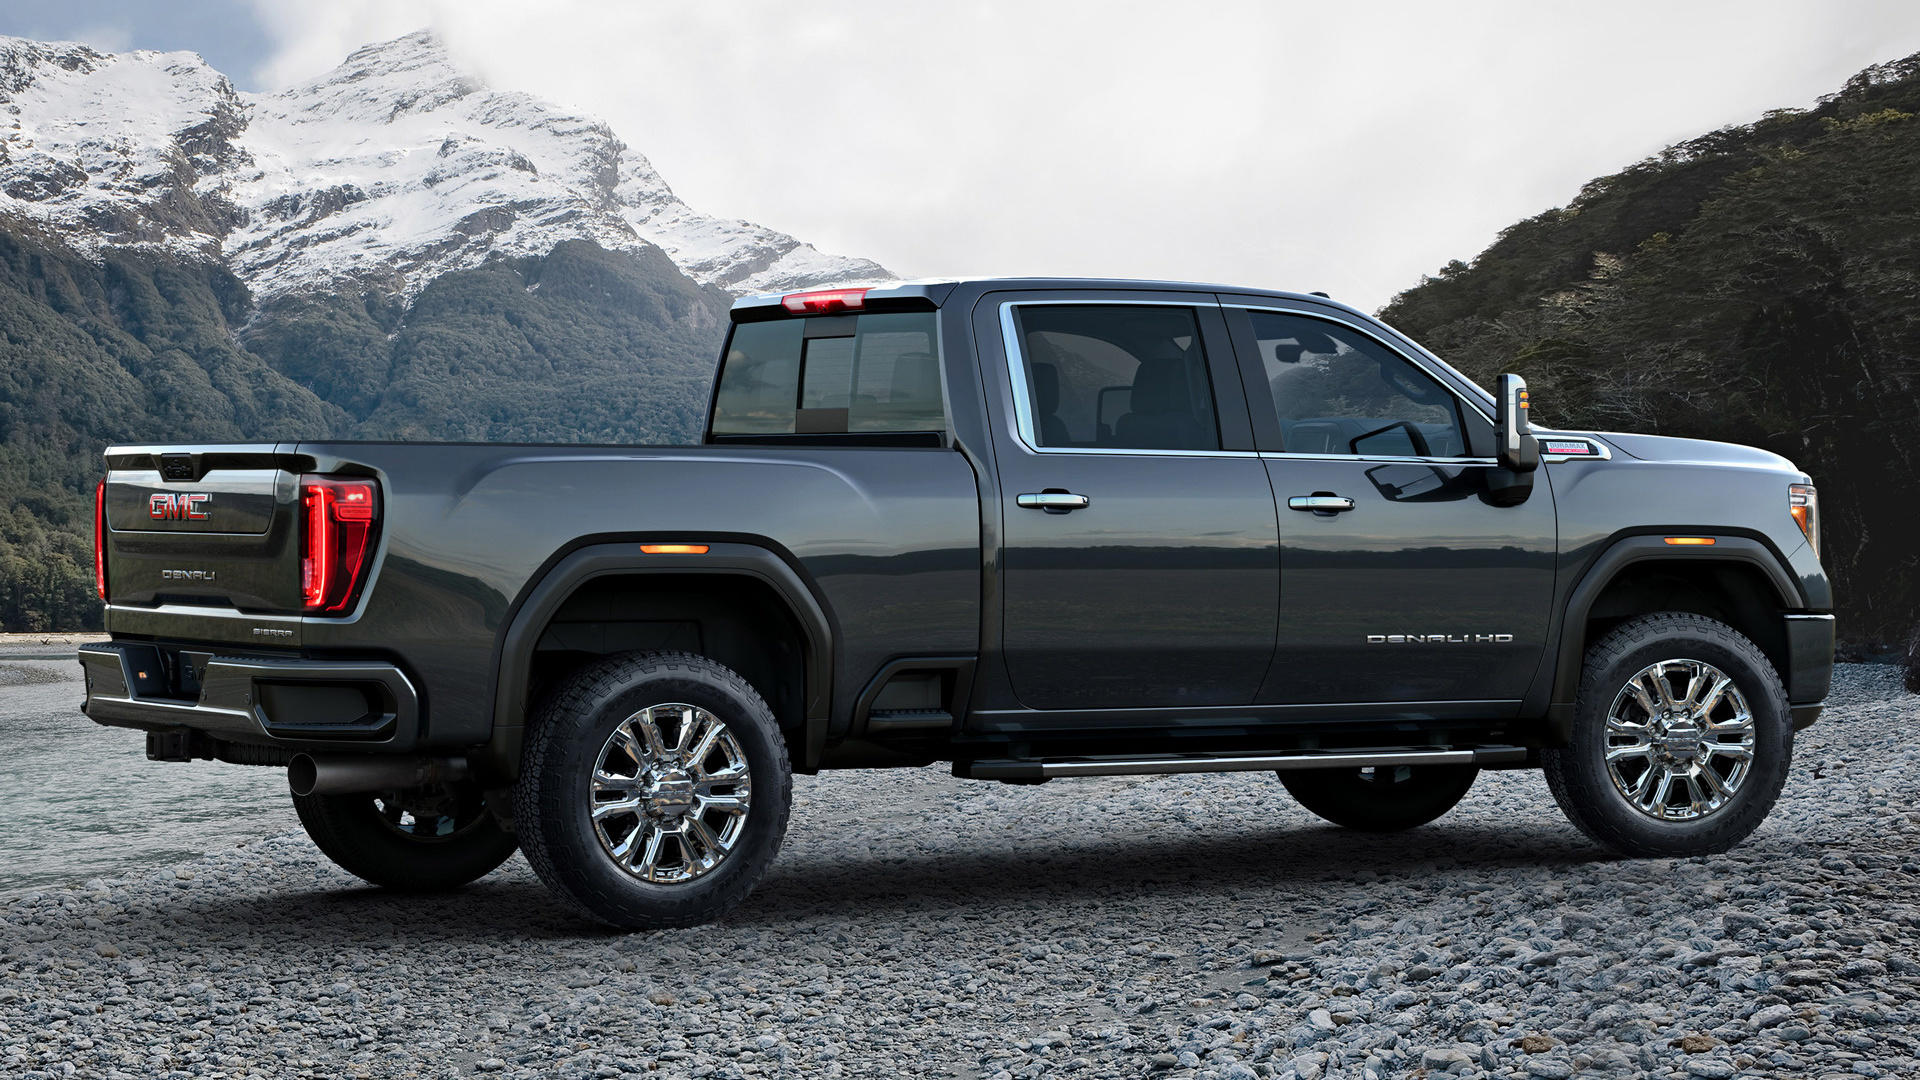 2020 GMC Sierra 2500 HD Denali Crew Cab - Wallpapers and HD Images | Car Pixel